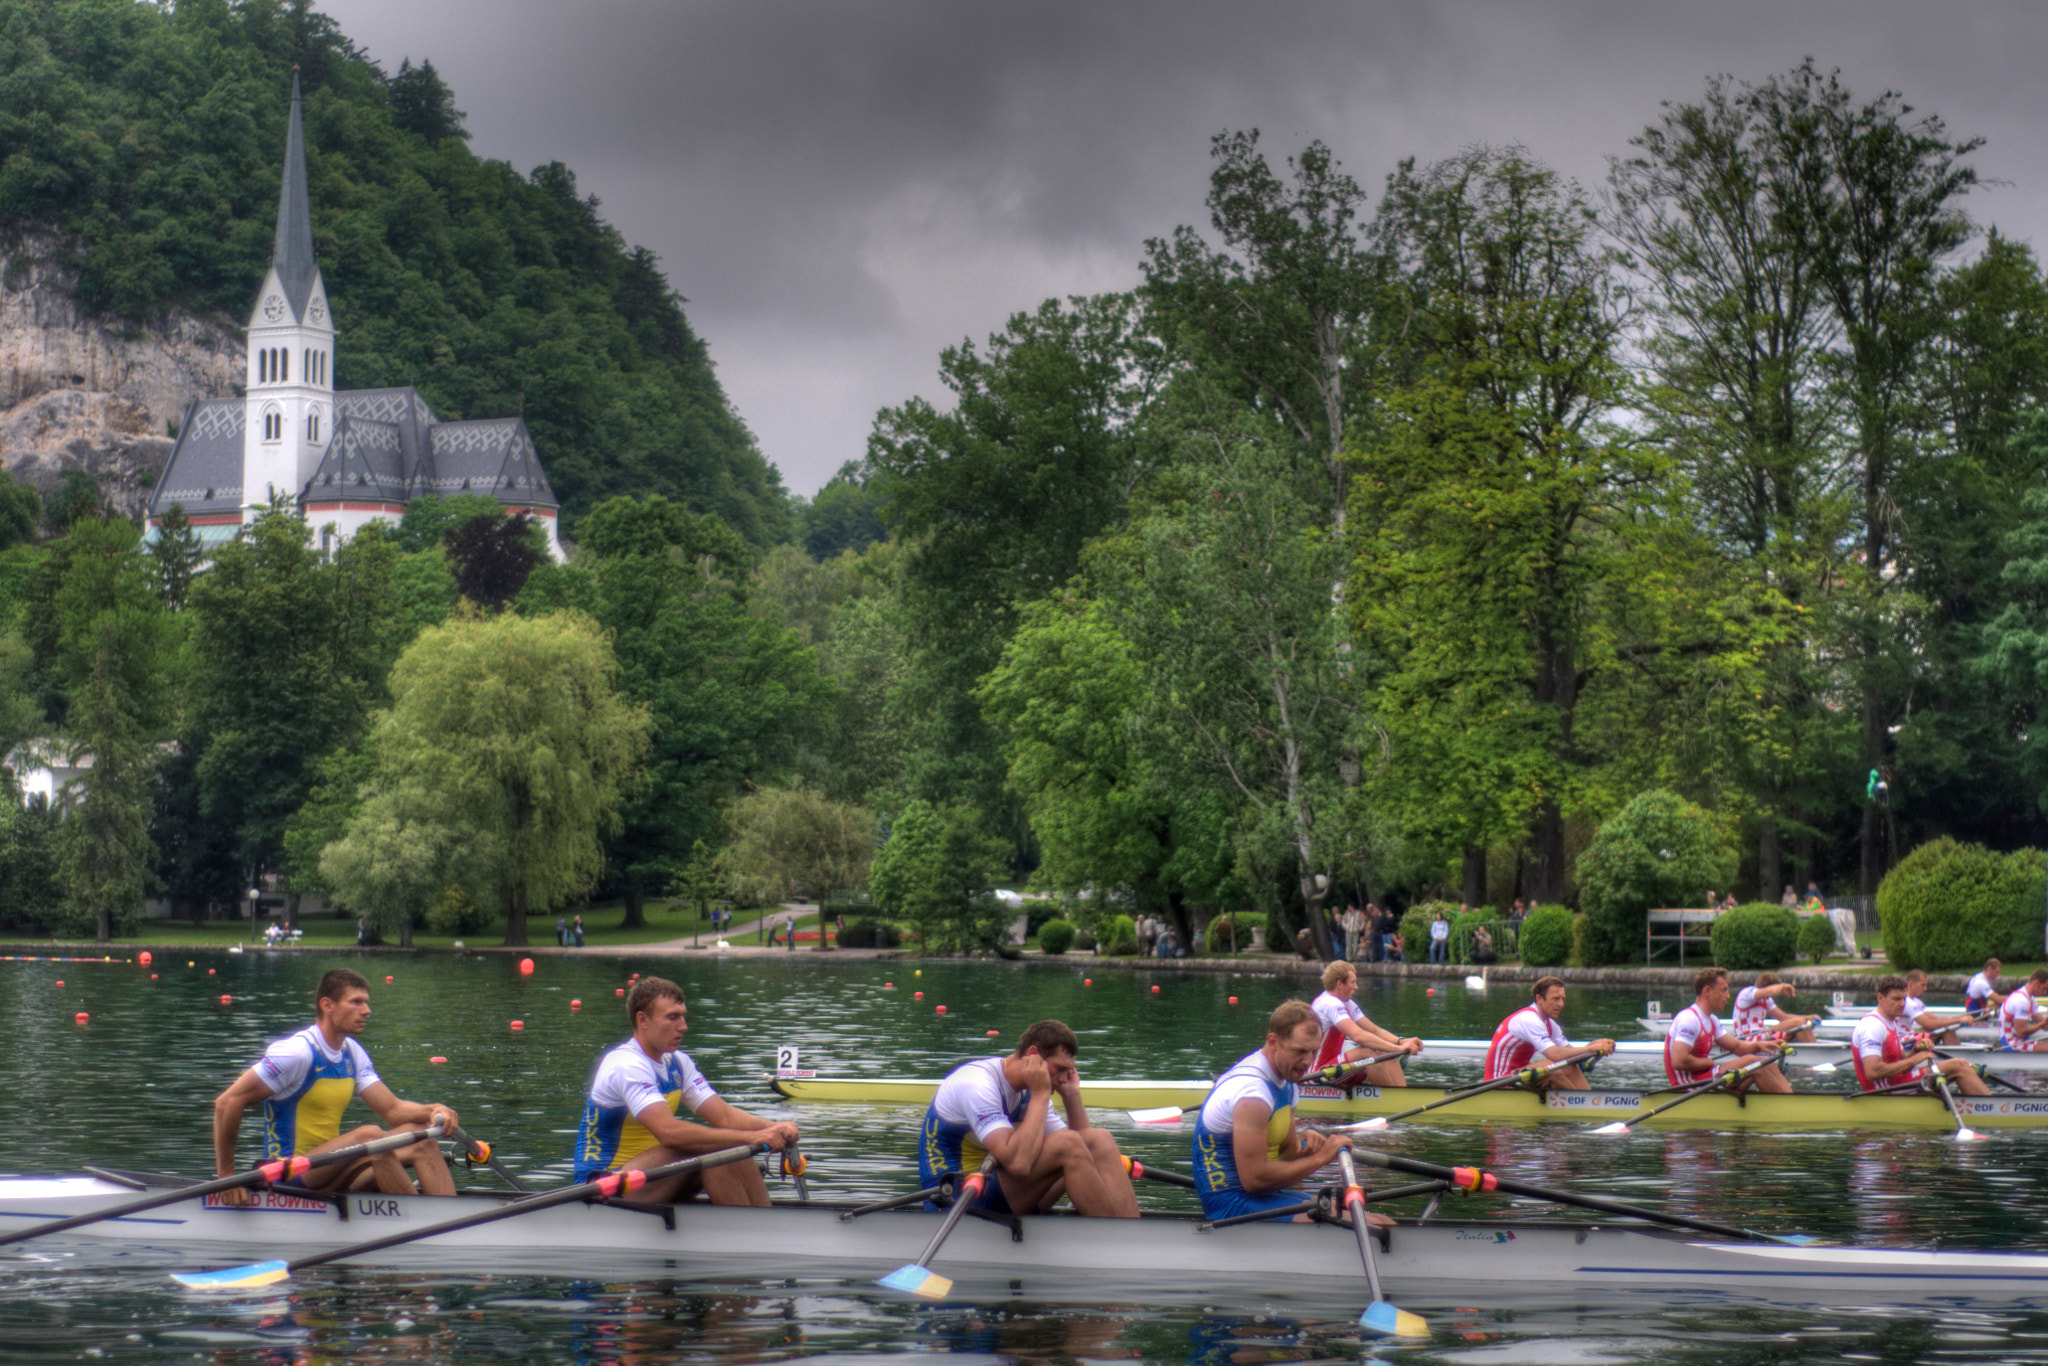 Photograph Rowers preparing to start by Matija Horvat on 500px